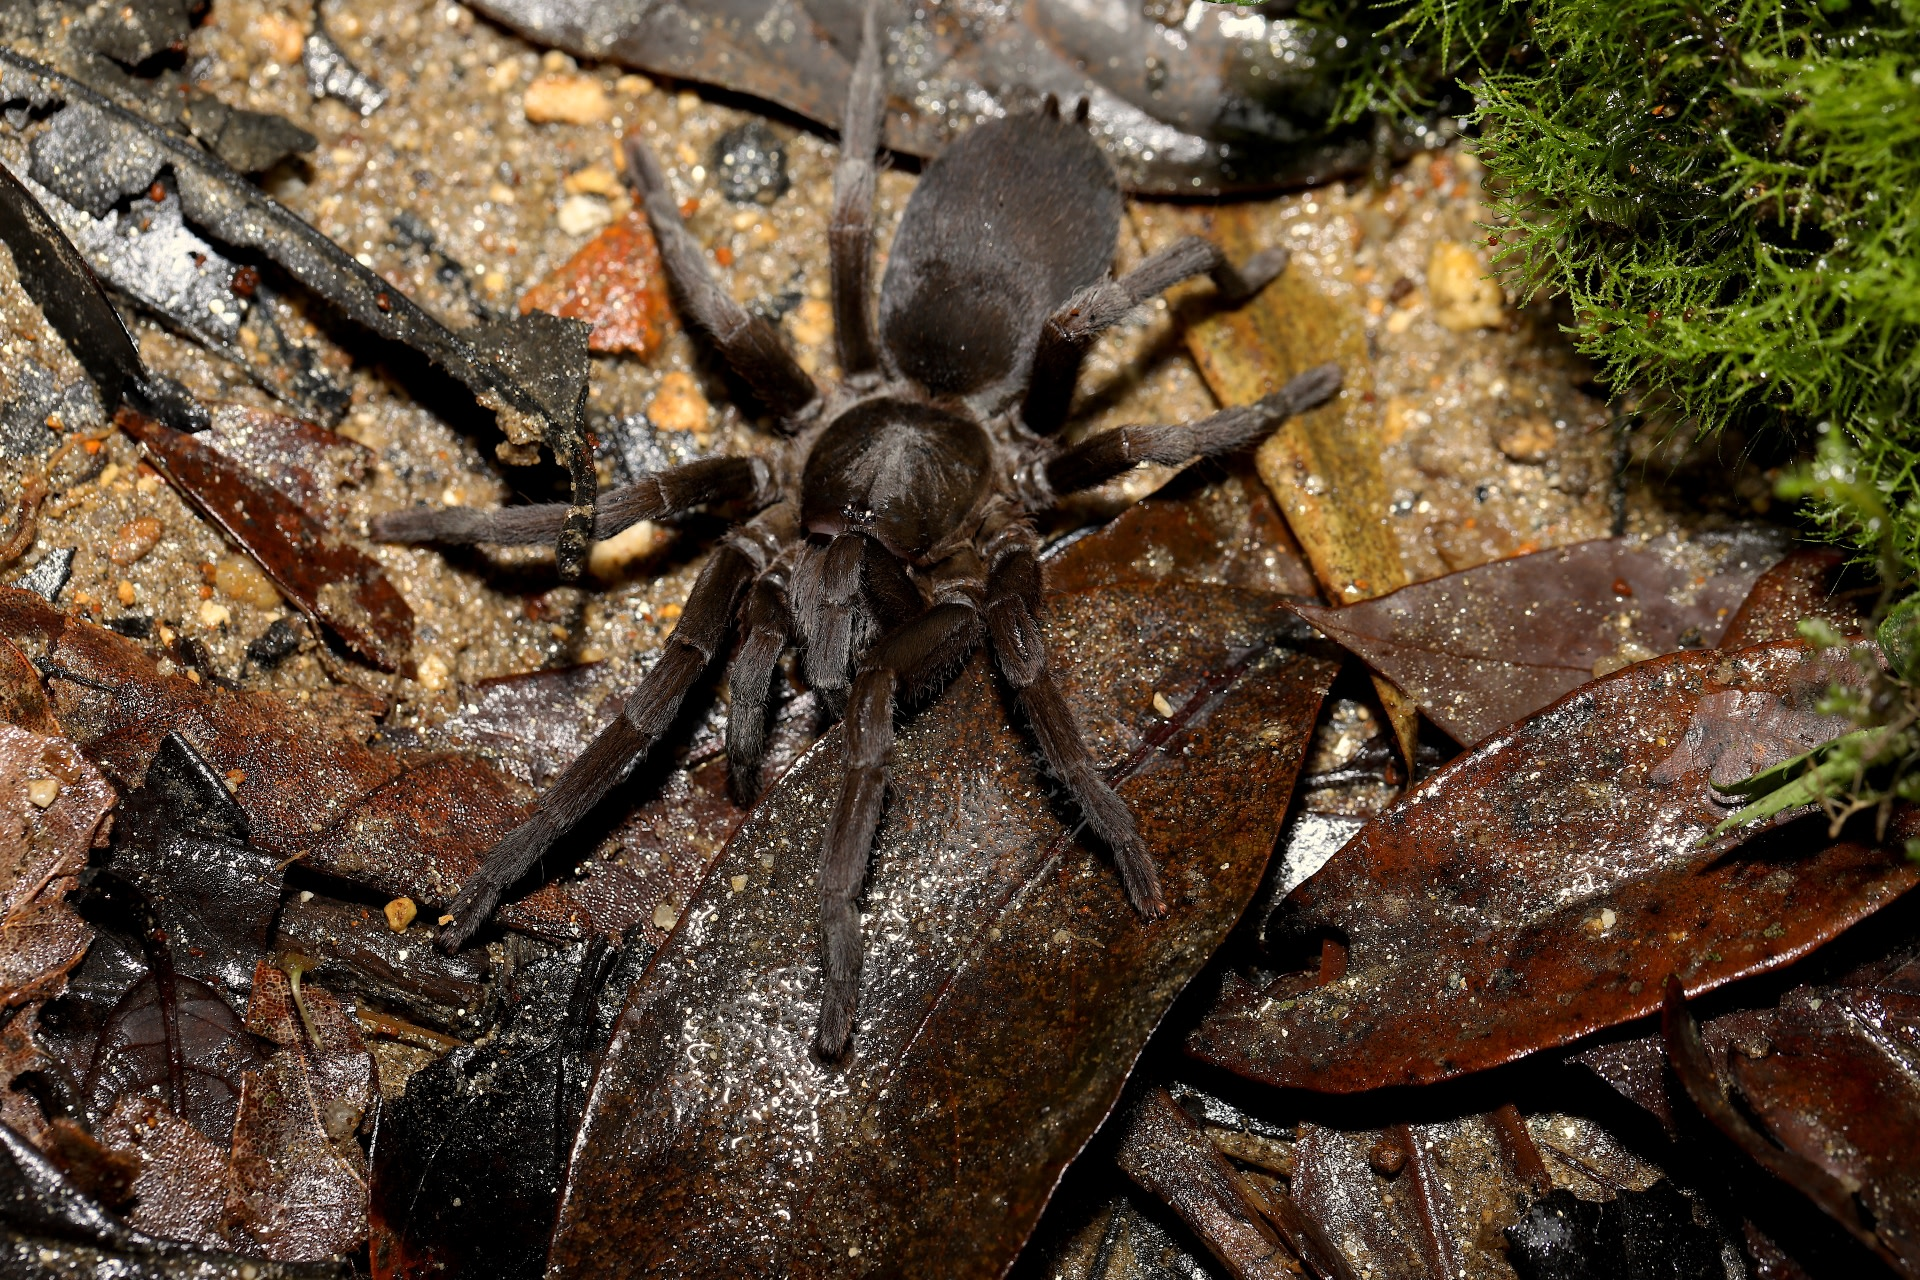 Tarantulas are large hairy spiders that have had a bad reputation for years. However, they are mostly harmless to humans, biting only when provoked, and their bites are very rarely fatal.  